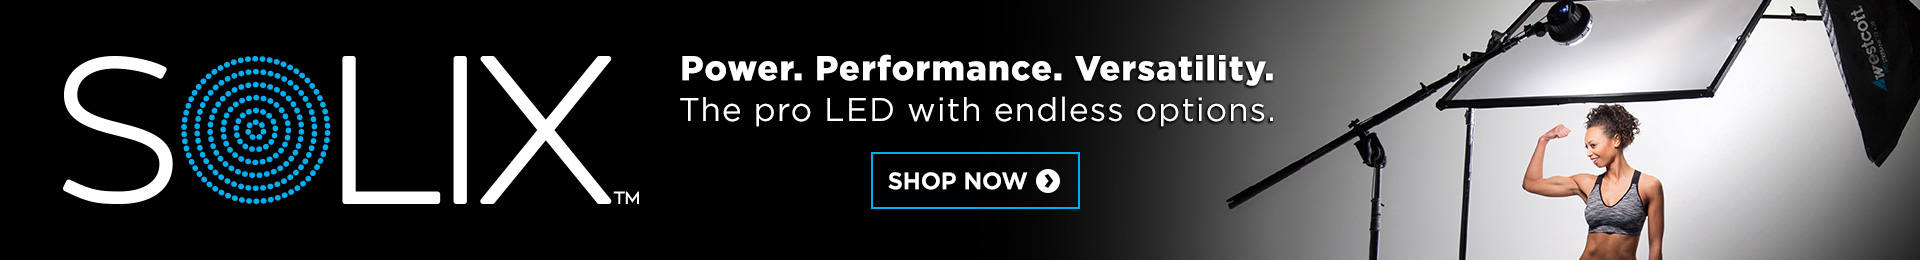 Power. Performance. Versatility. Solix - The Pro LED with Endless Options.